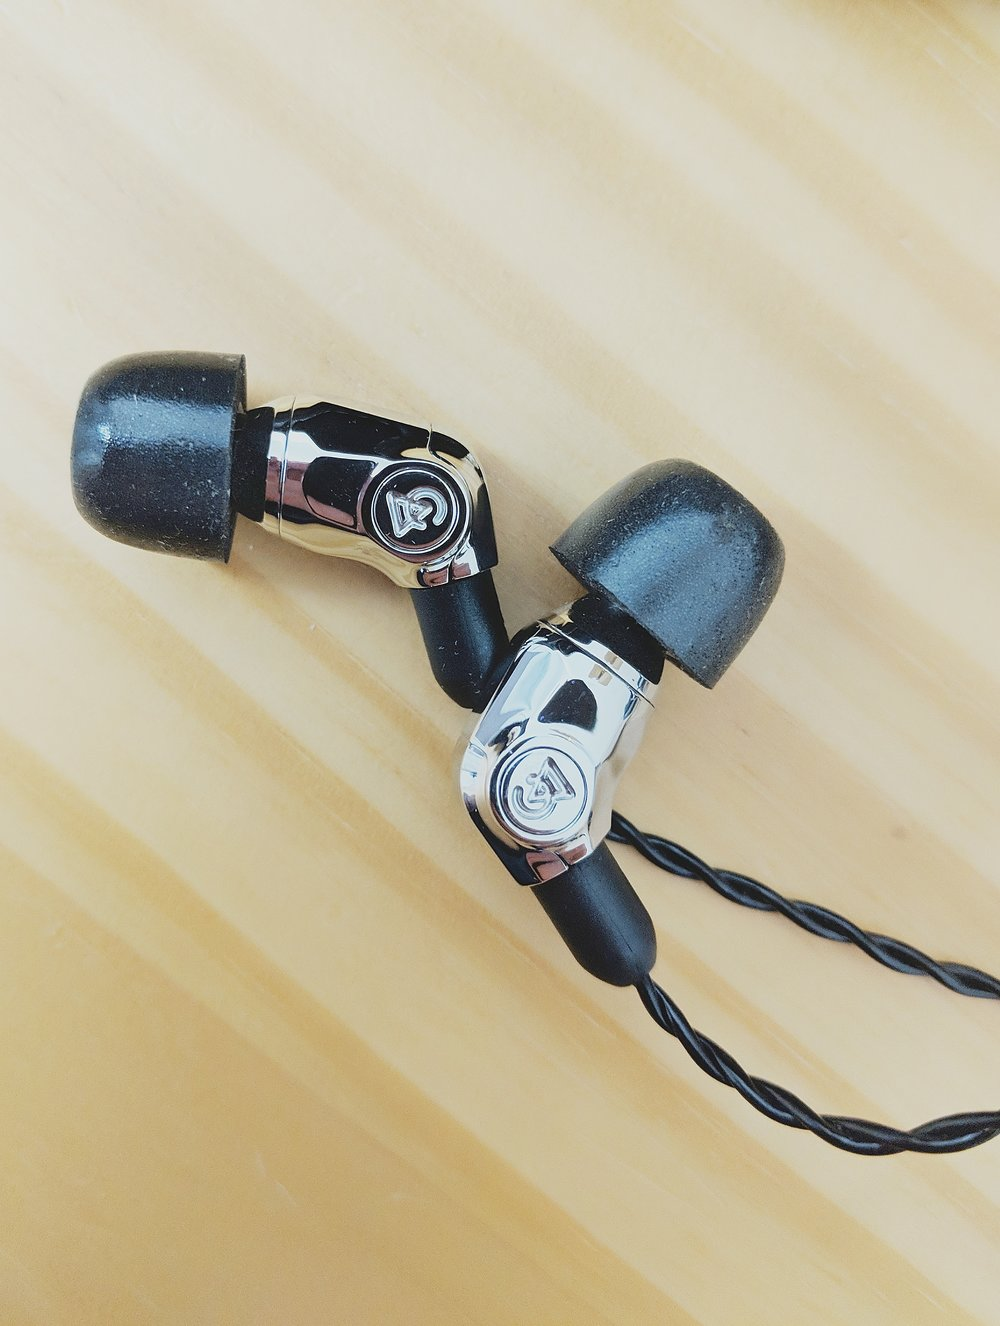 Campfire Audio Comet earphones reviewed with the included Comply Foam eartips.